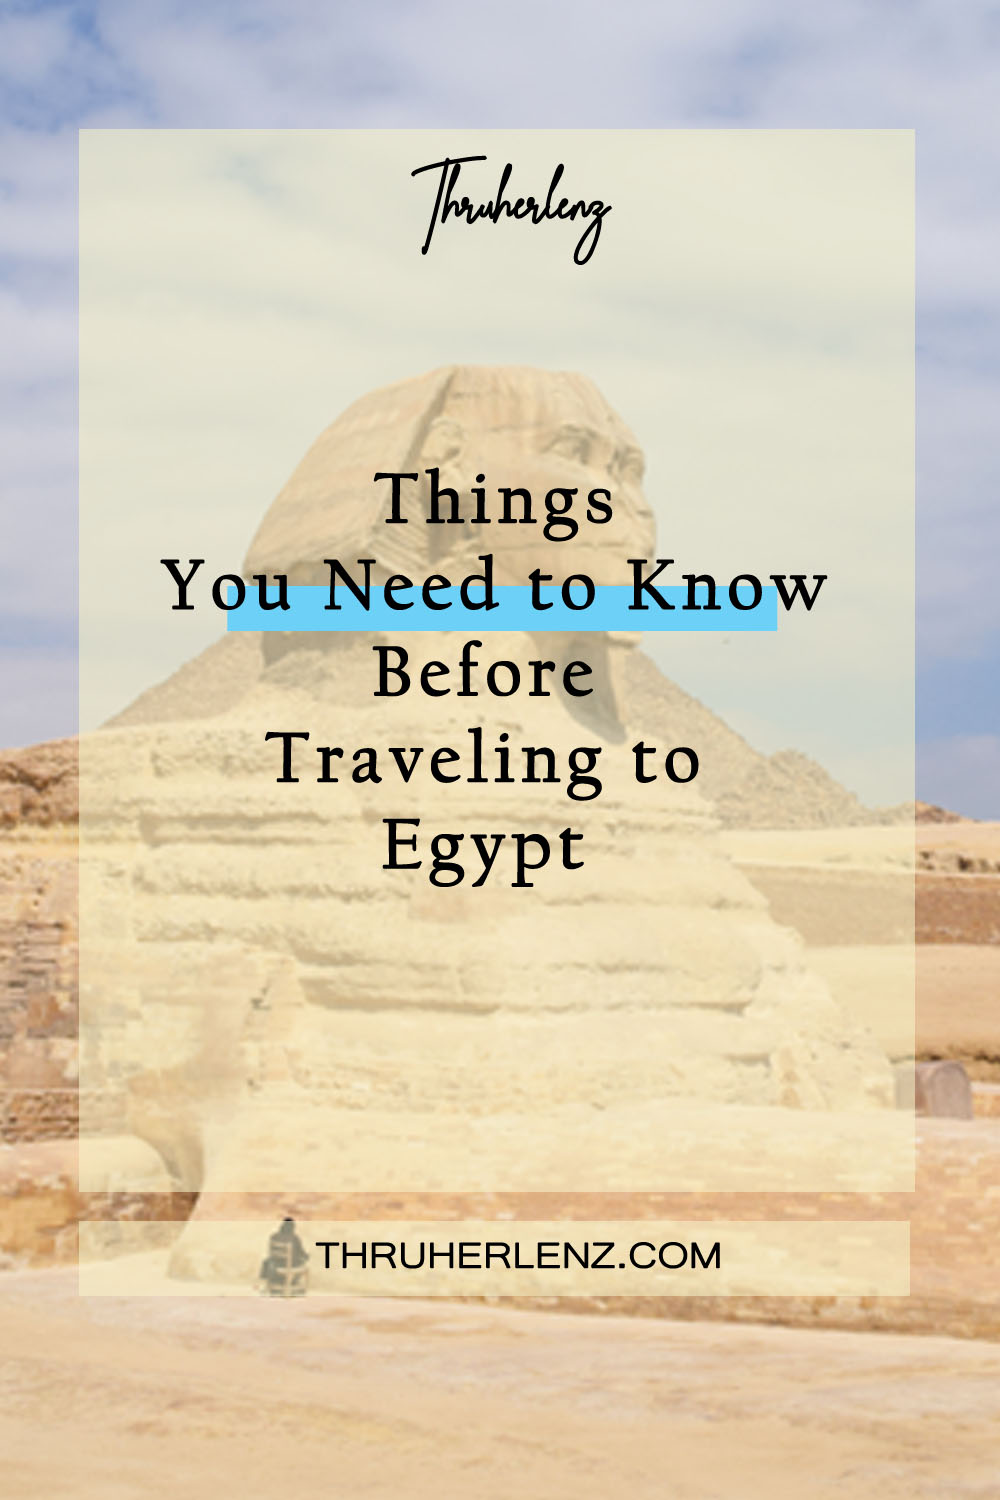 Things You Need to Know Before Traveling to Egypt